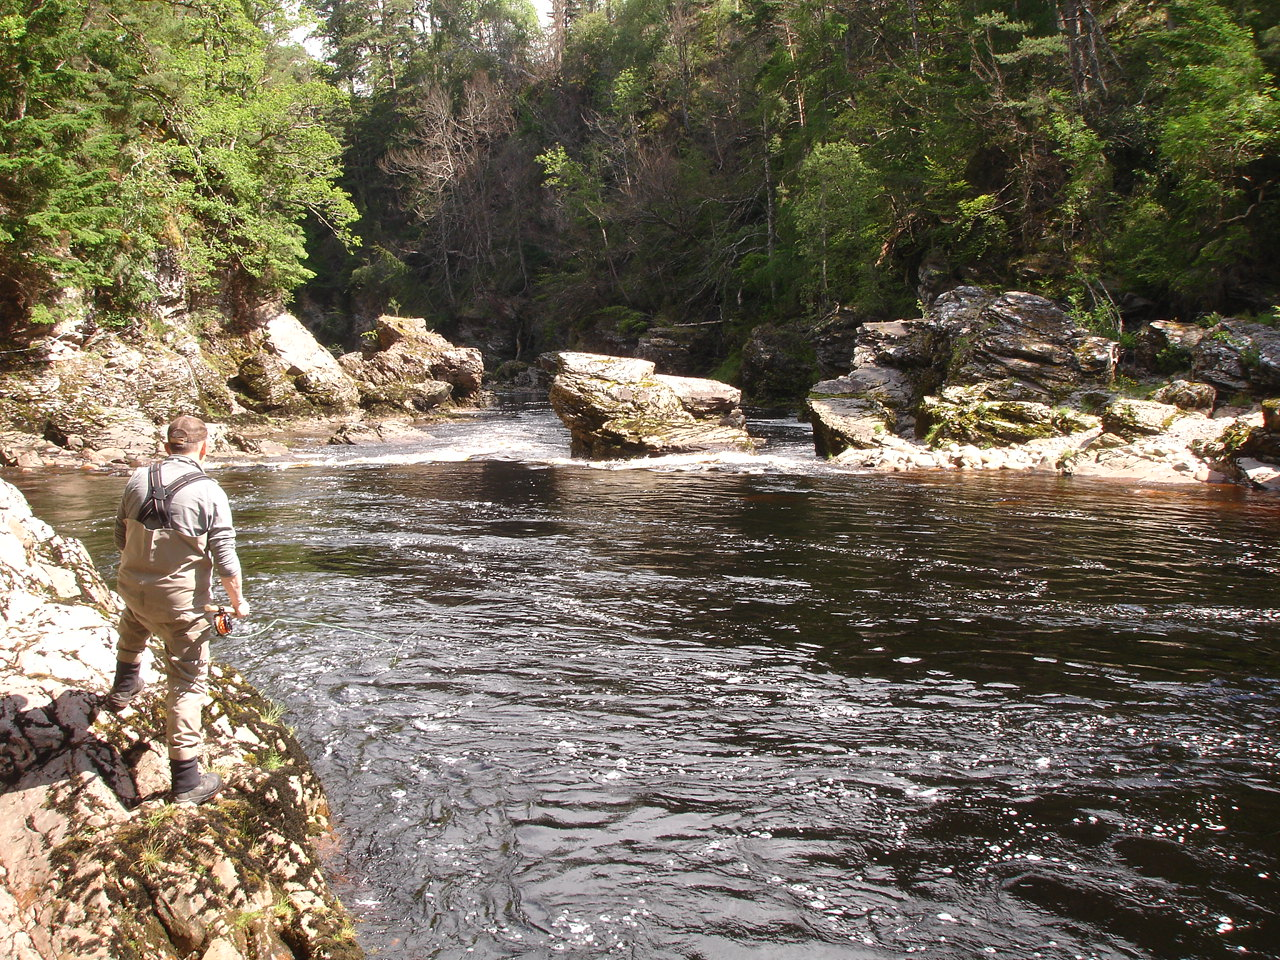 Summer salmon fishing in fantastic Whirling Hole Pool, Upper Home, Darnaway, River Findhorn